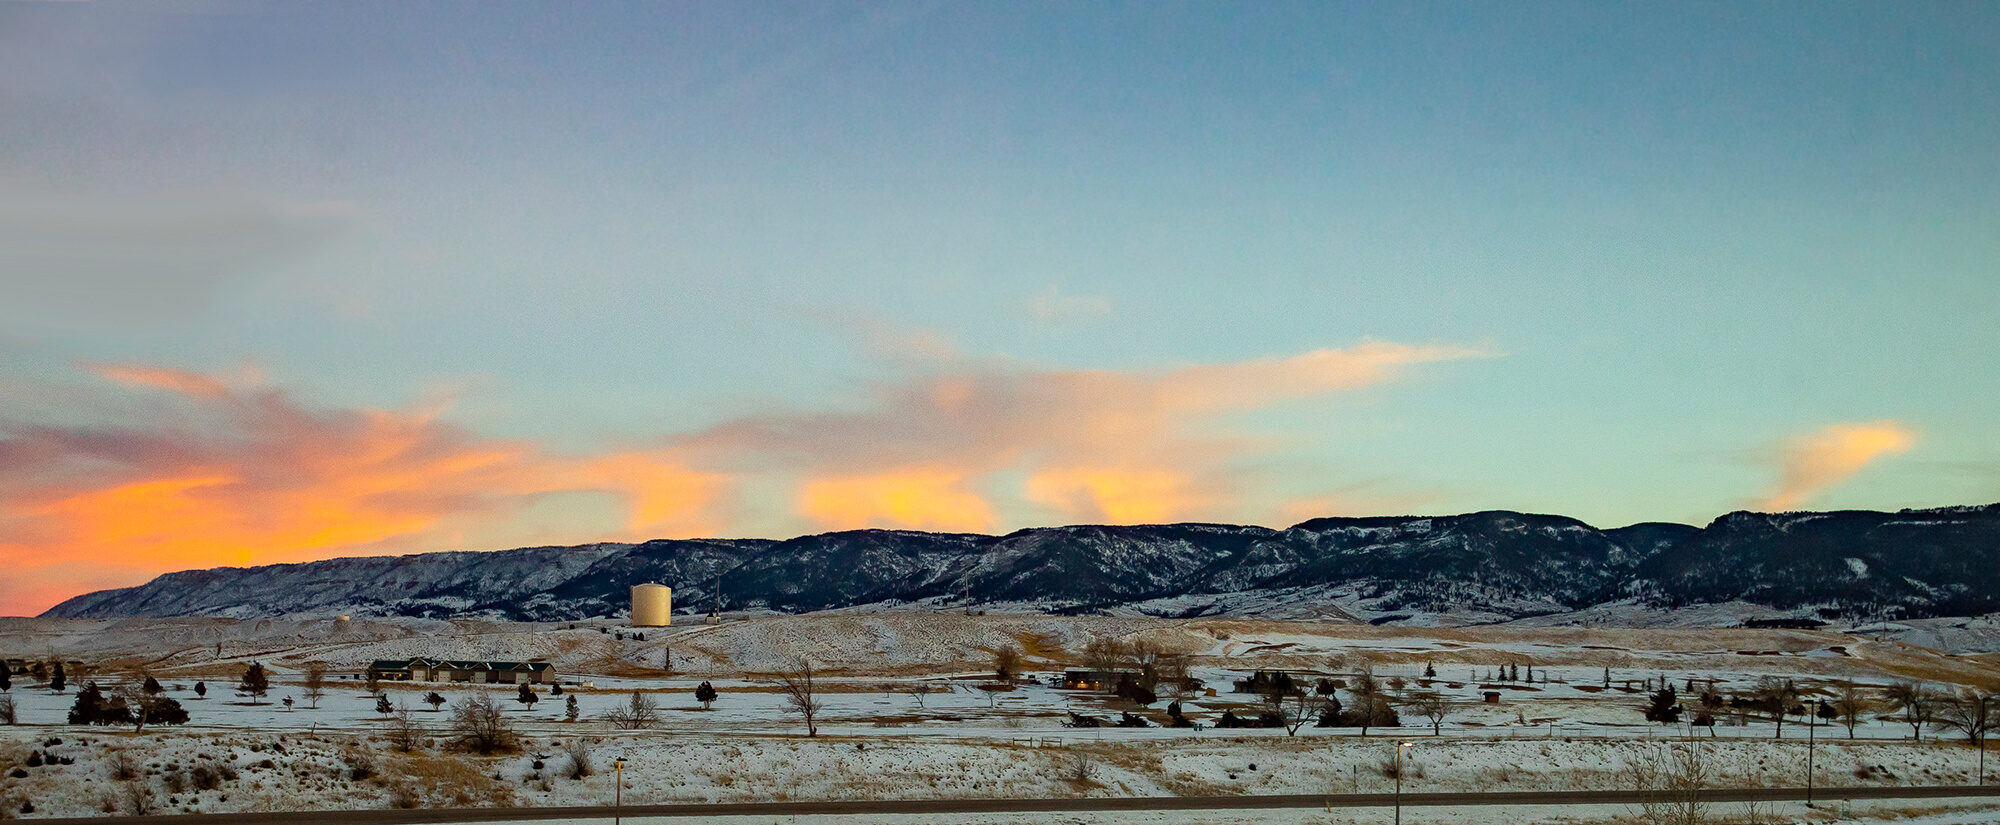 Casper Mountain at sunrise with a light dusting of snow on the ground.